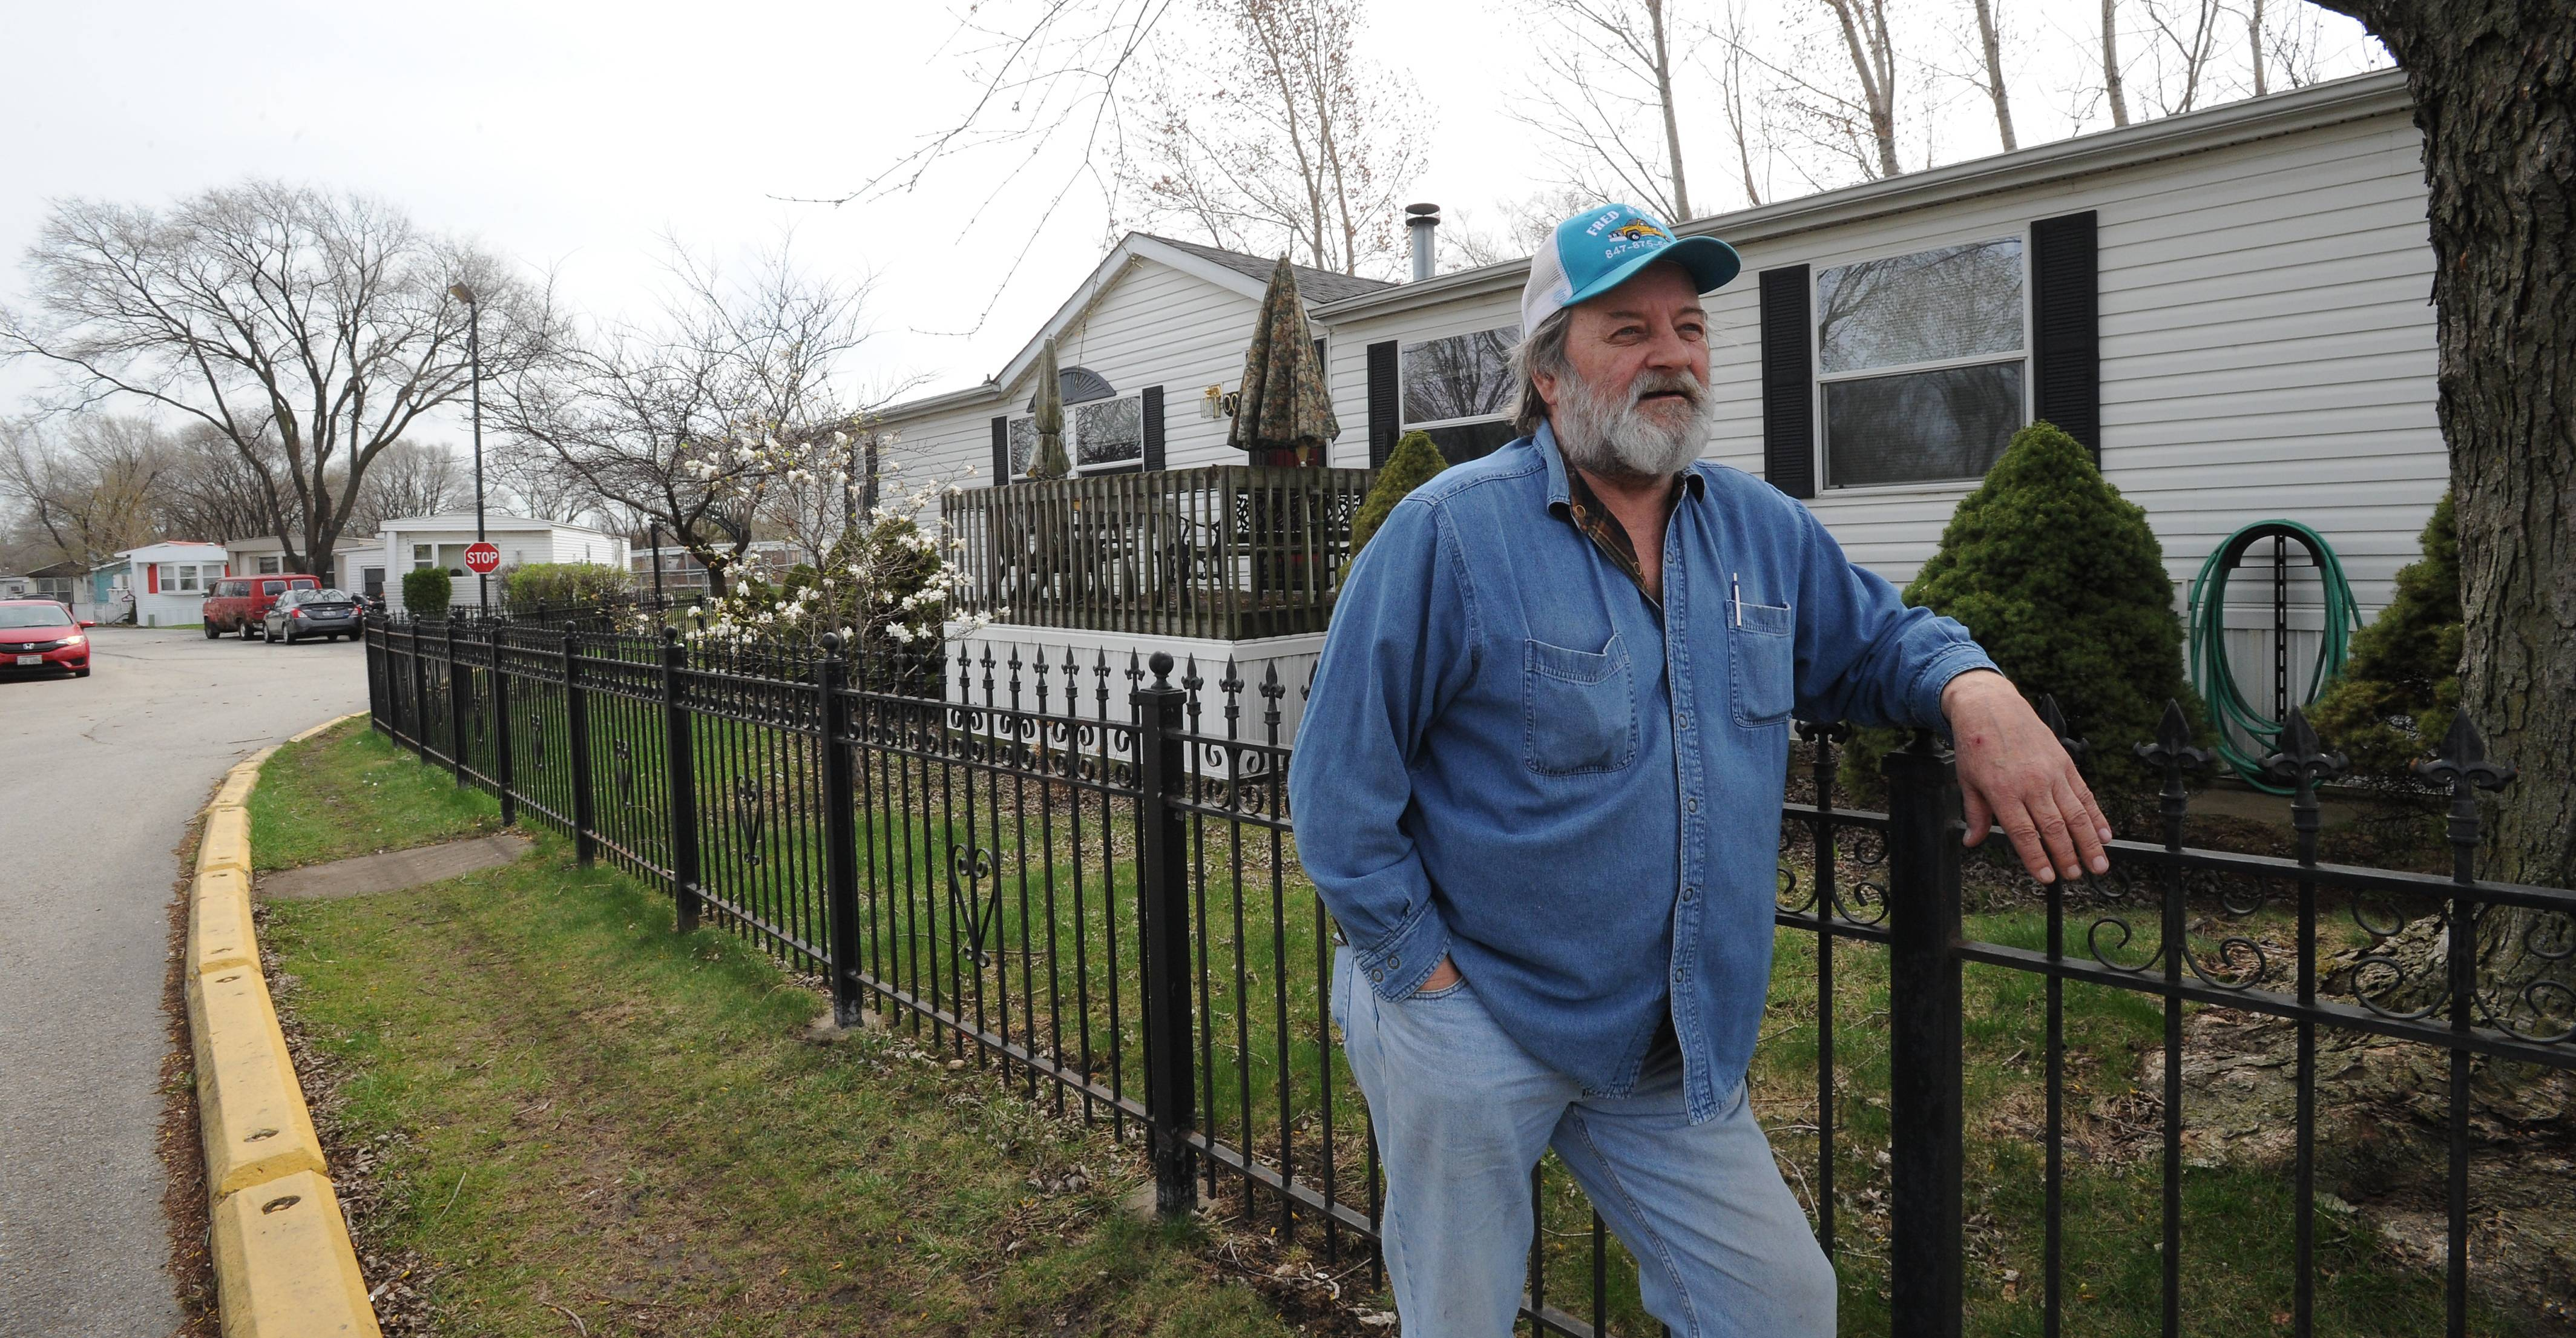 Oasis resident Roger Knutson asked to build a basement under his home. The request was denied.